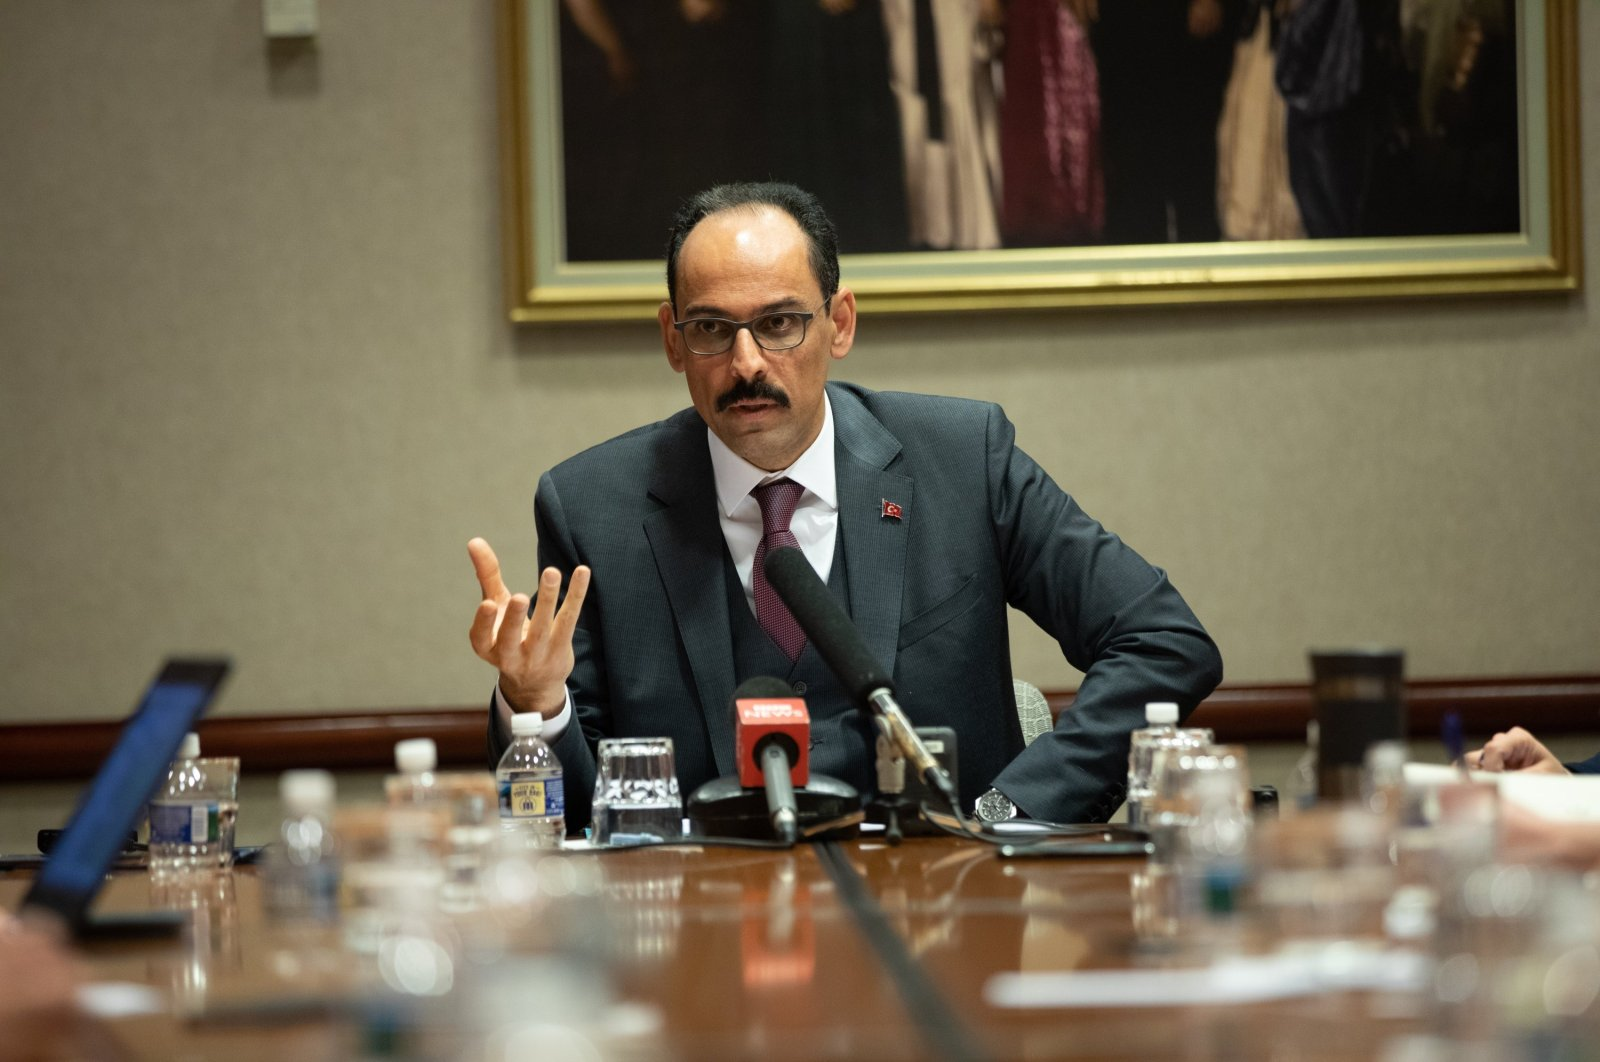 Presidential Spokesperson Ibrahim Kalın speaks to journalists after the 37th joint annual conference of the American-Turkish Council (ATC) in Washington, D.C., U.S., April 18, 2019. (AA File Photo)